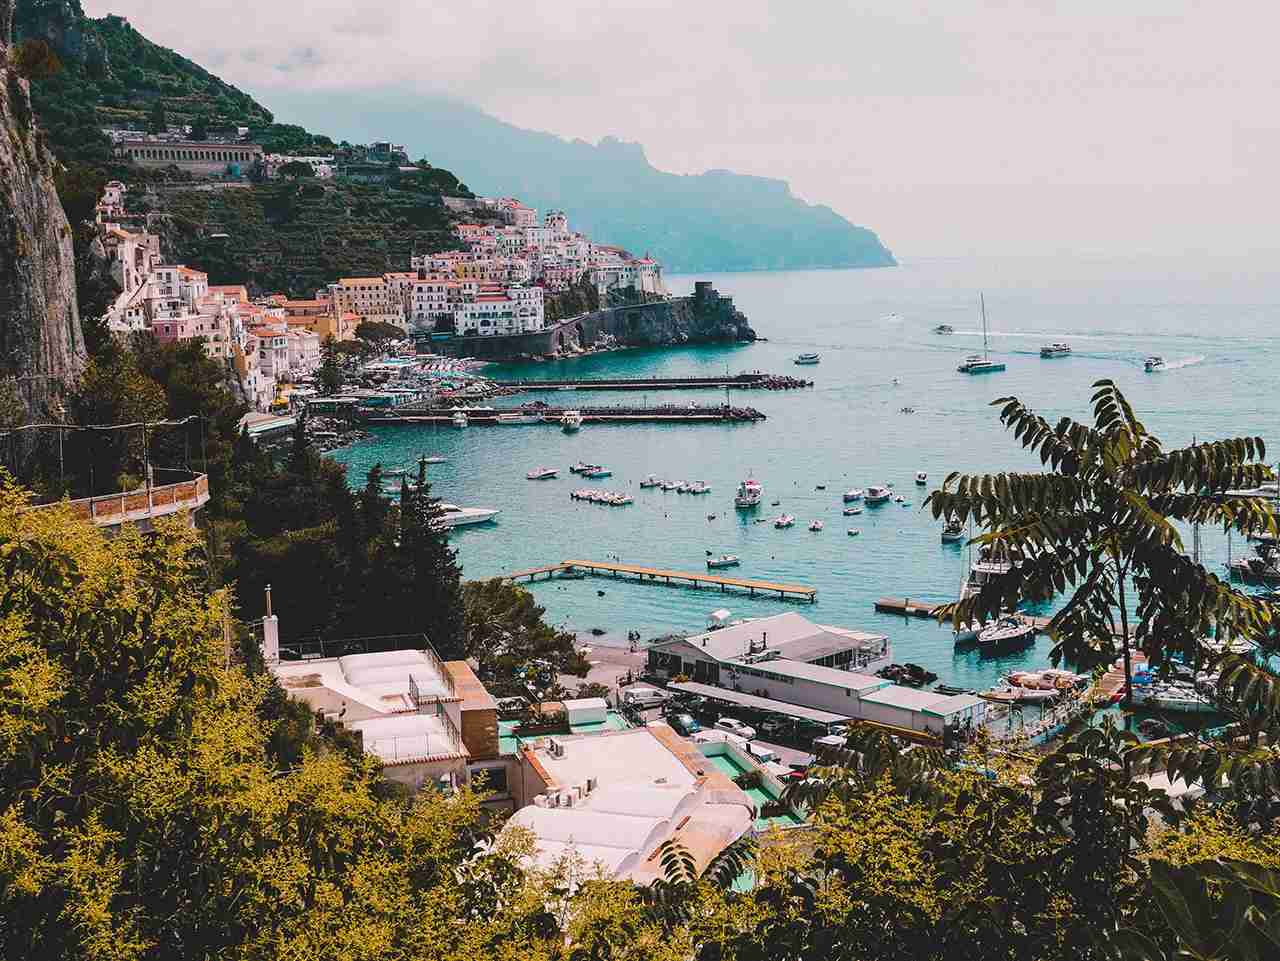 Photo by Silvia Trigo/Unsplash